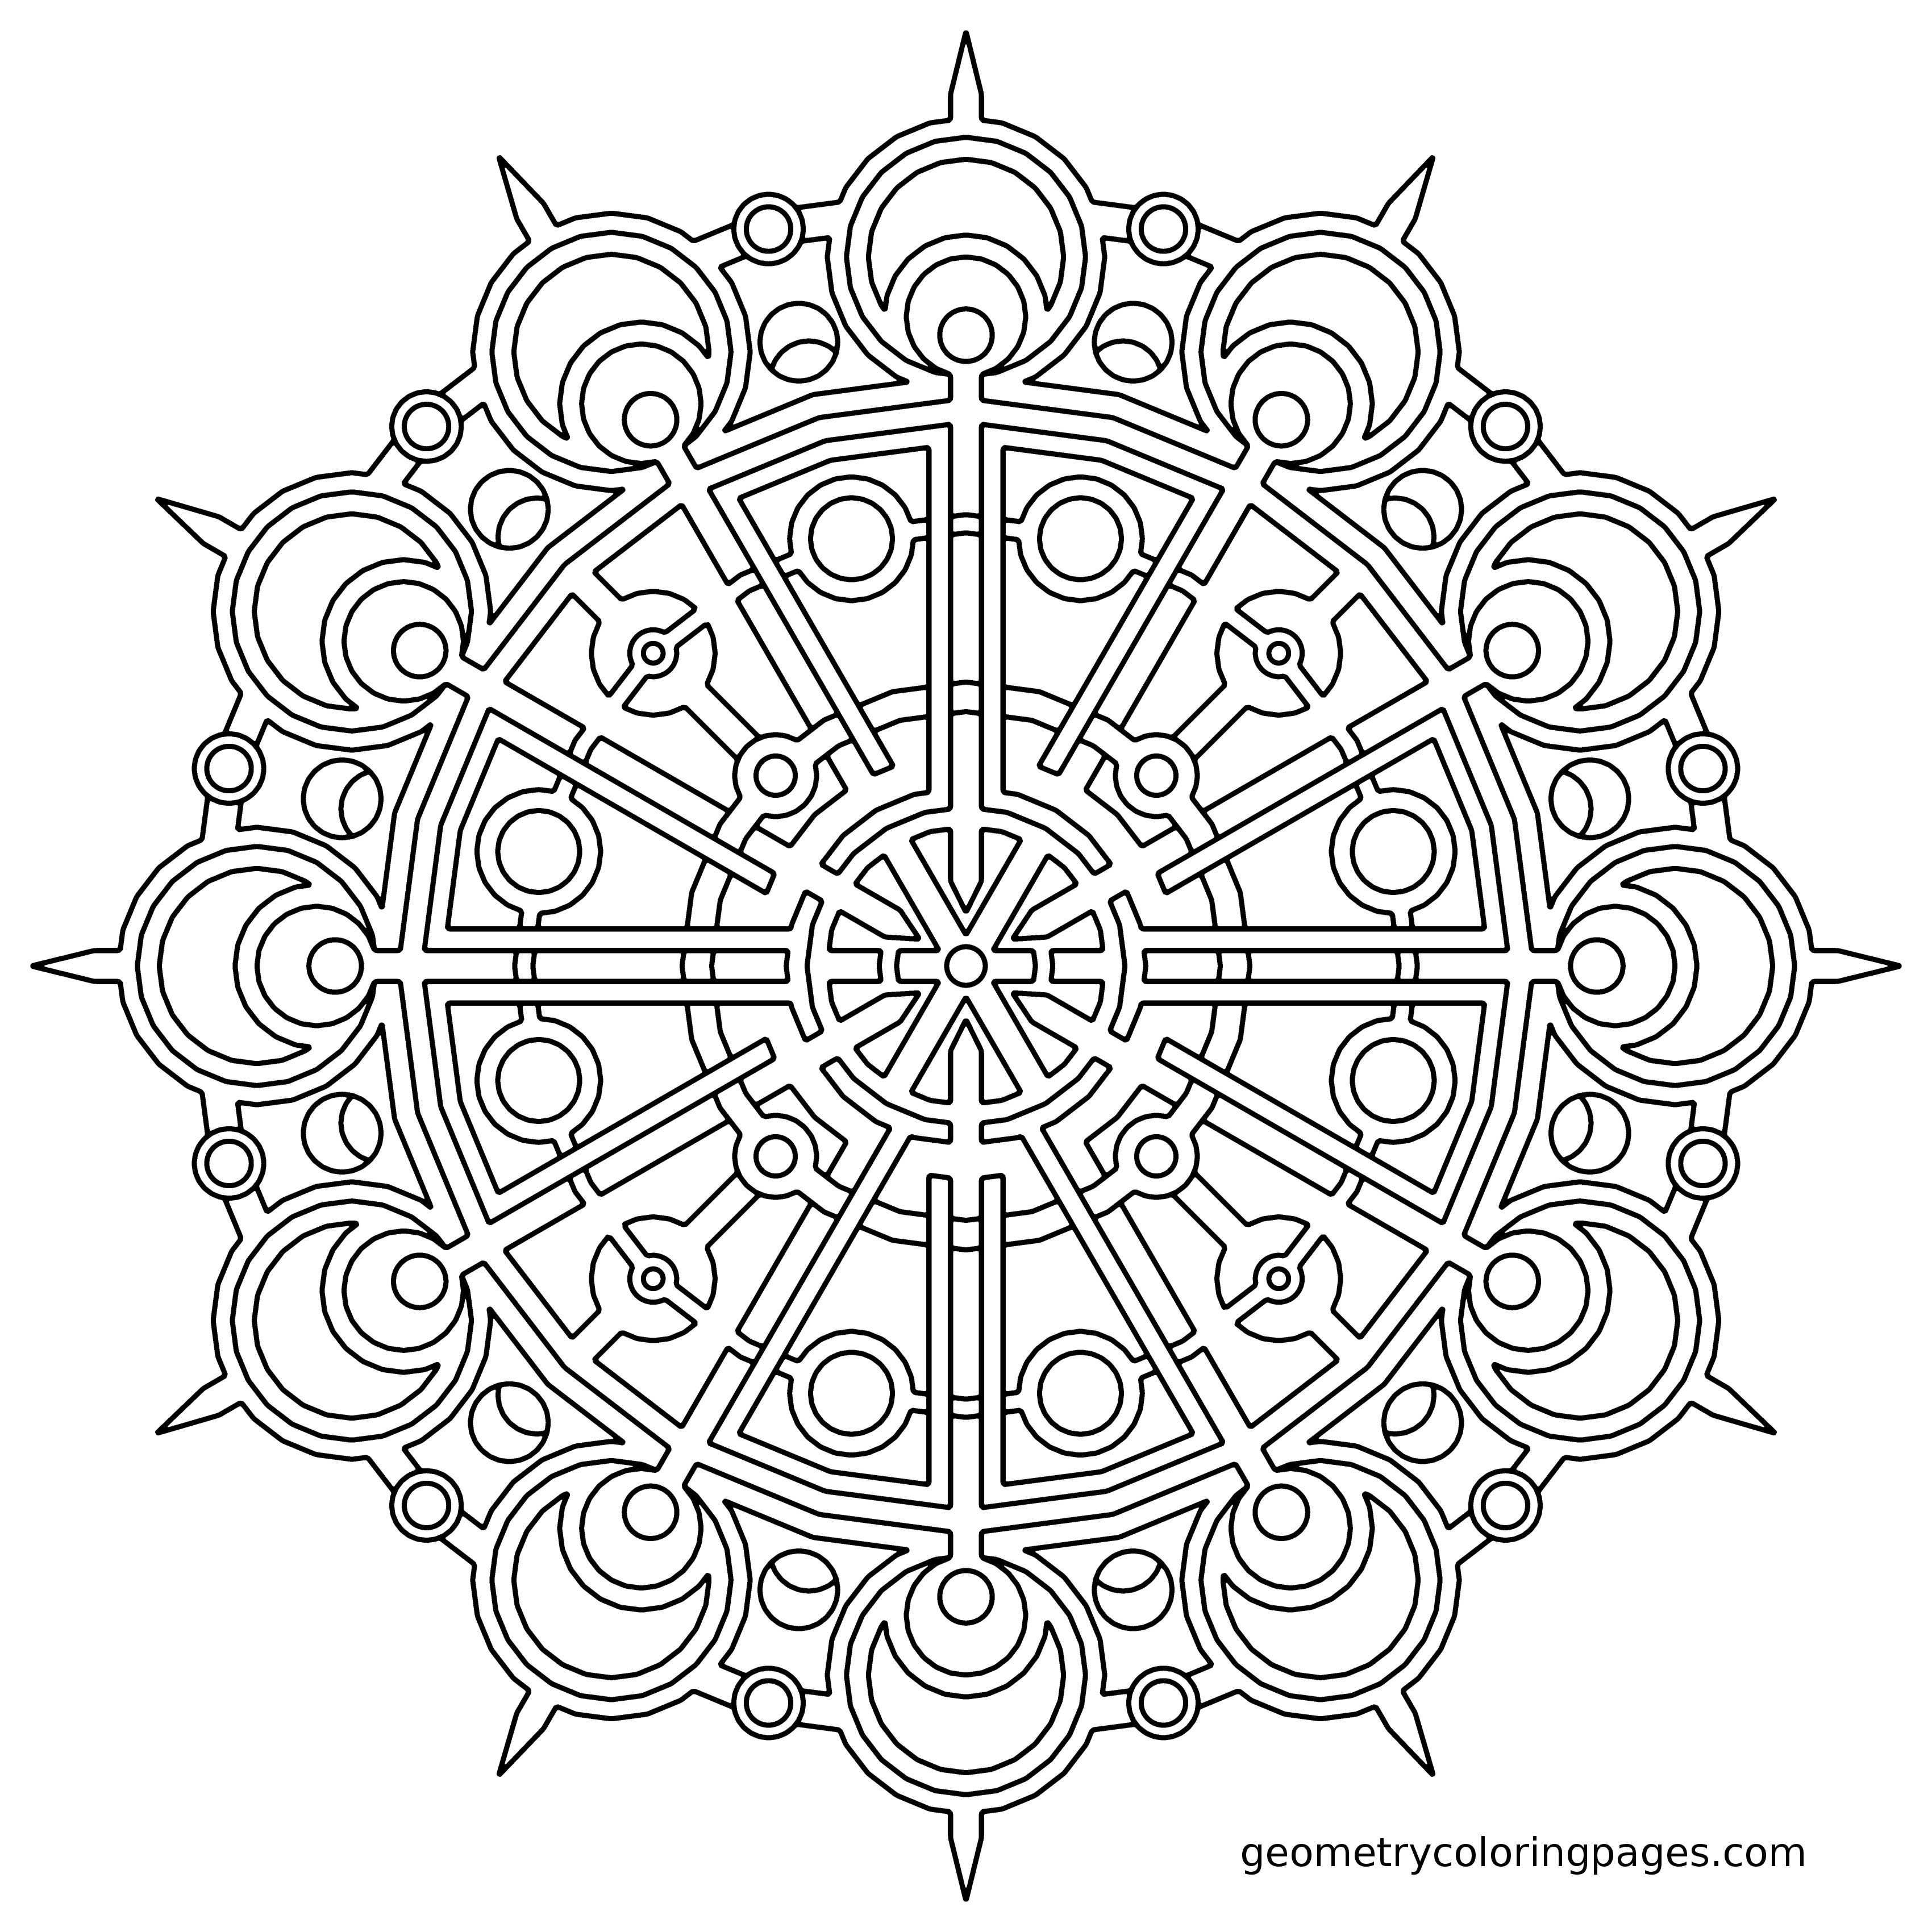 Free coloring pages of square mandala